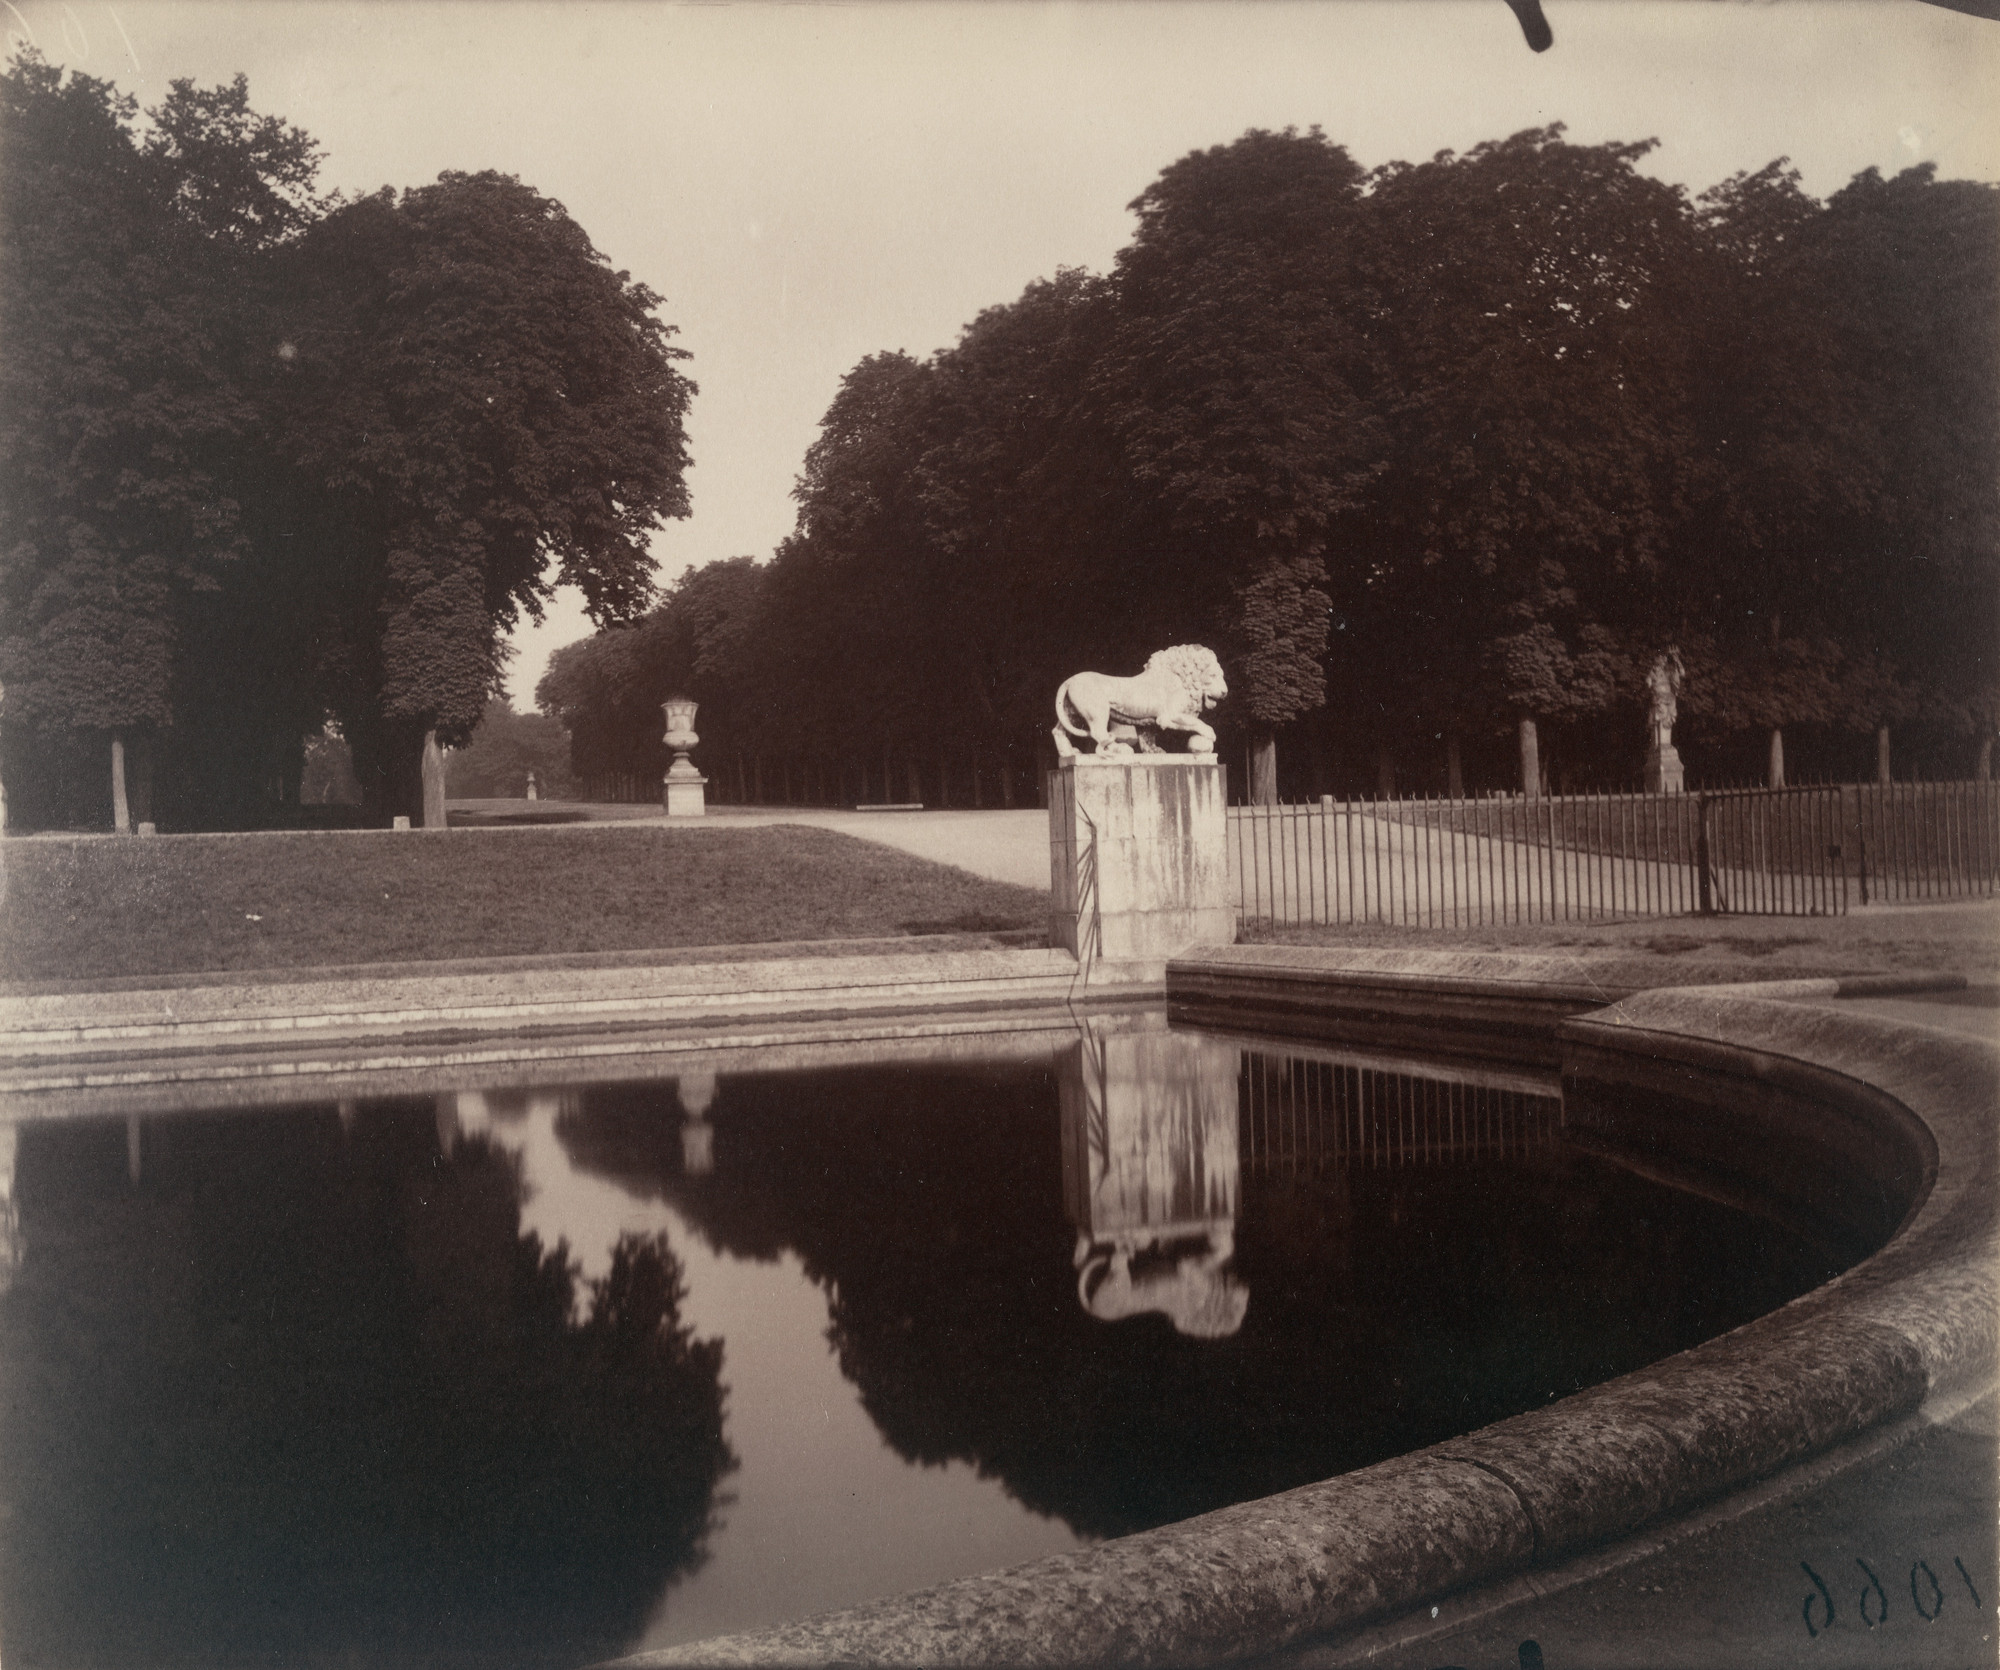 Eugène Atget. Saint-Cloud. Morning, 7:00, July 1921